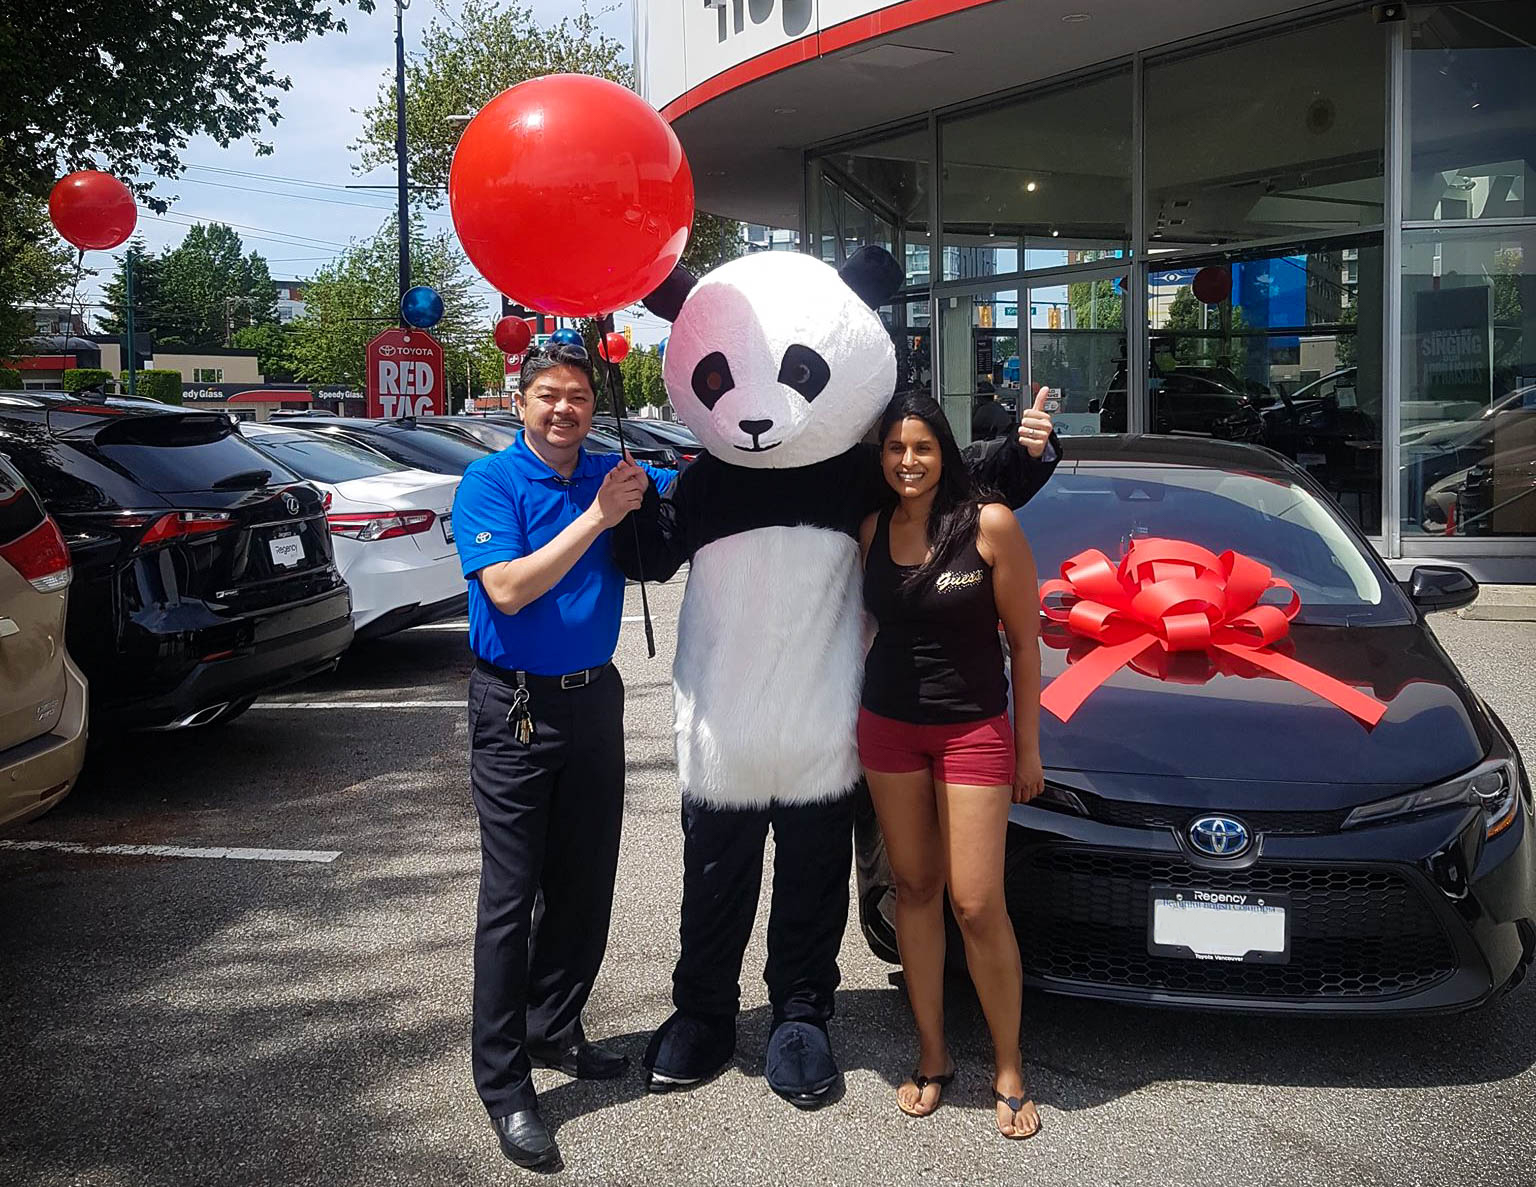 Panda Delivery